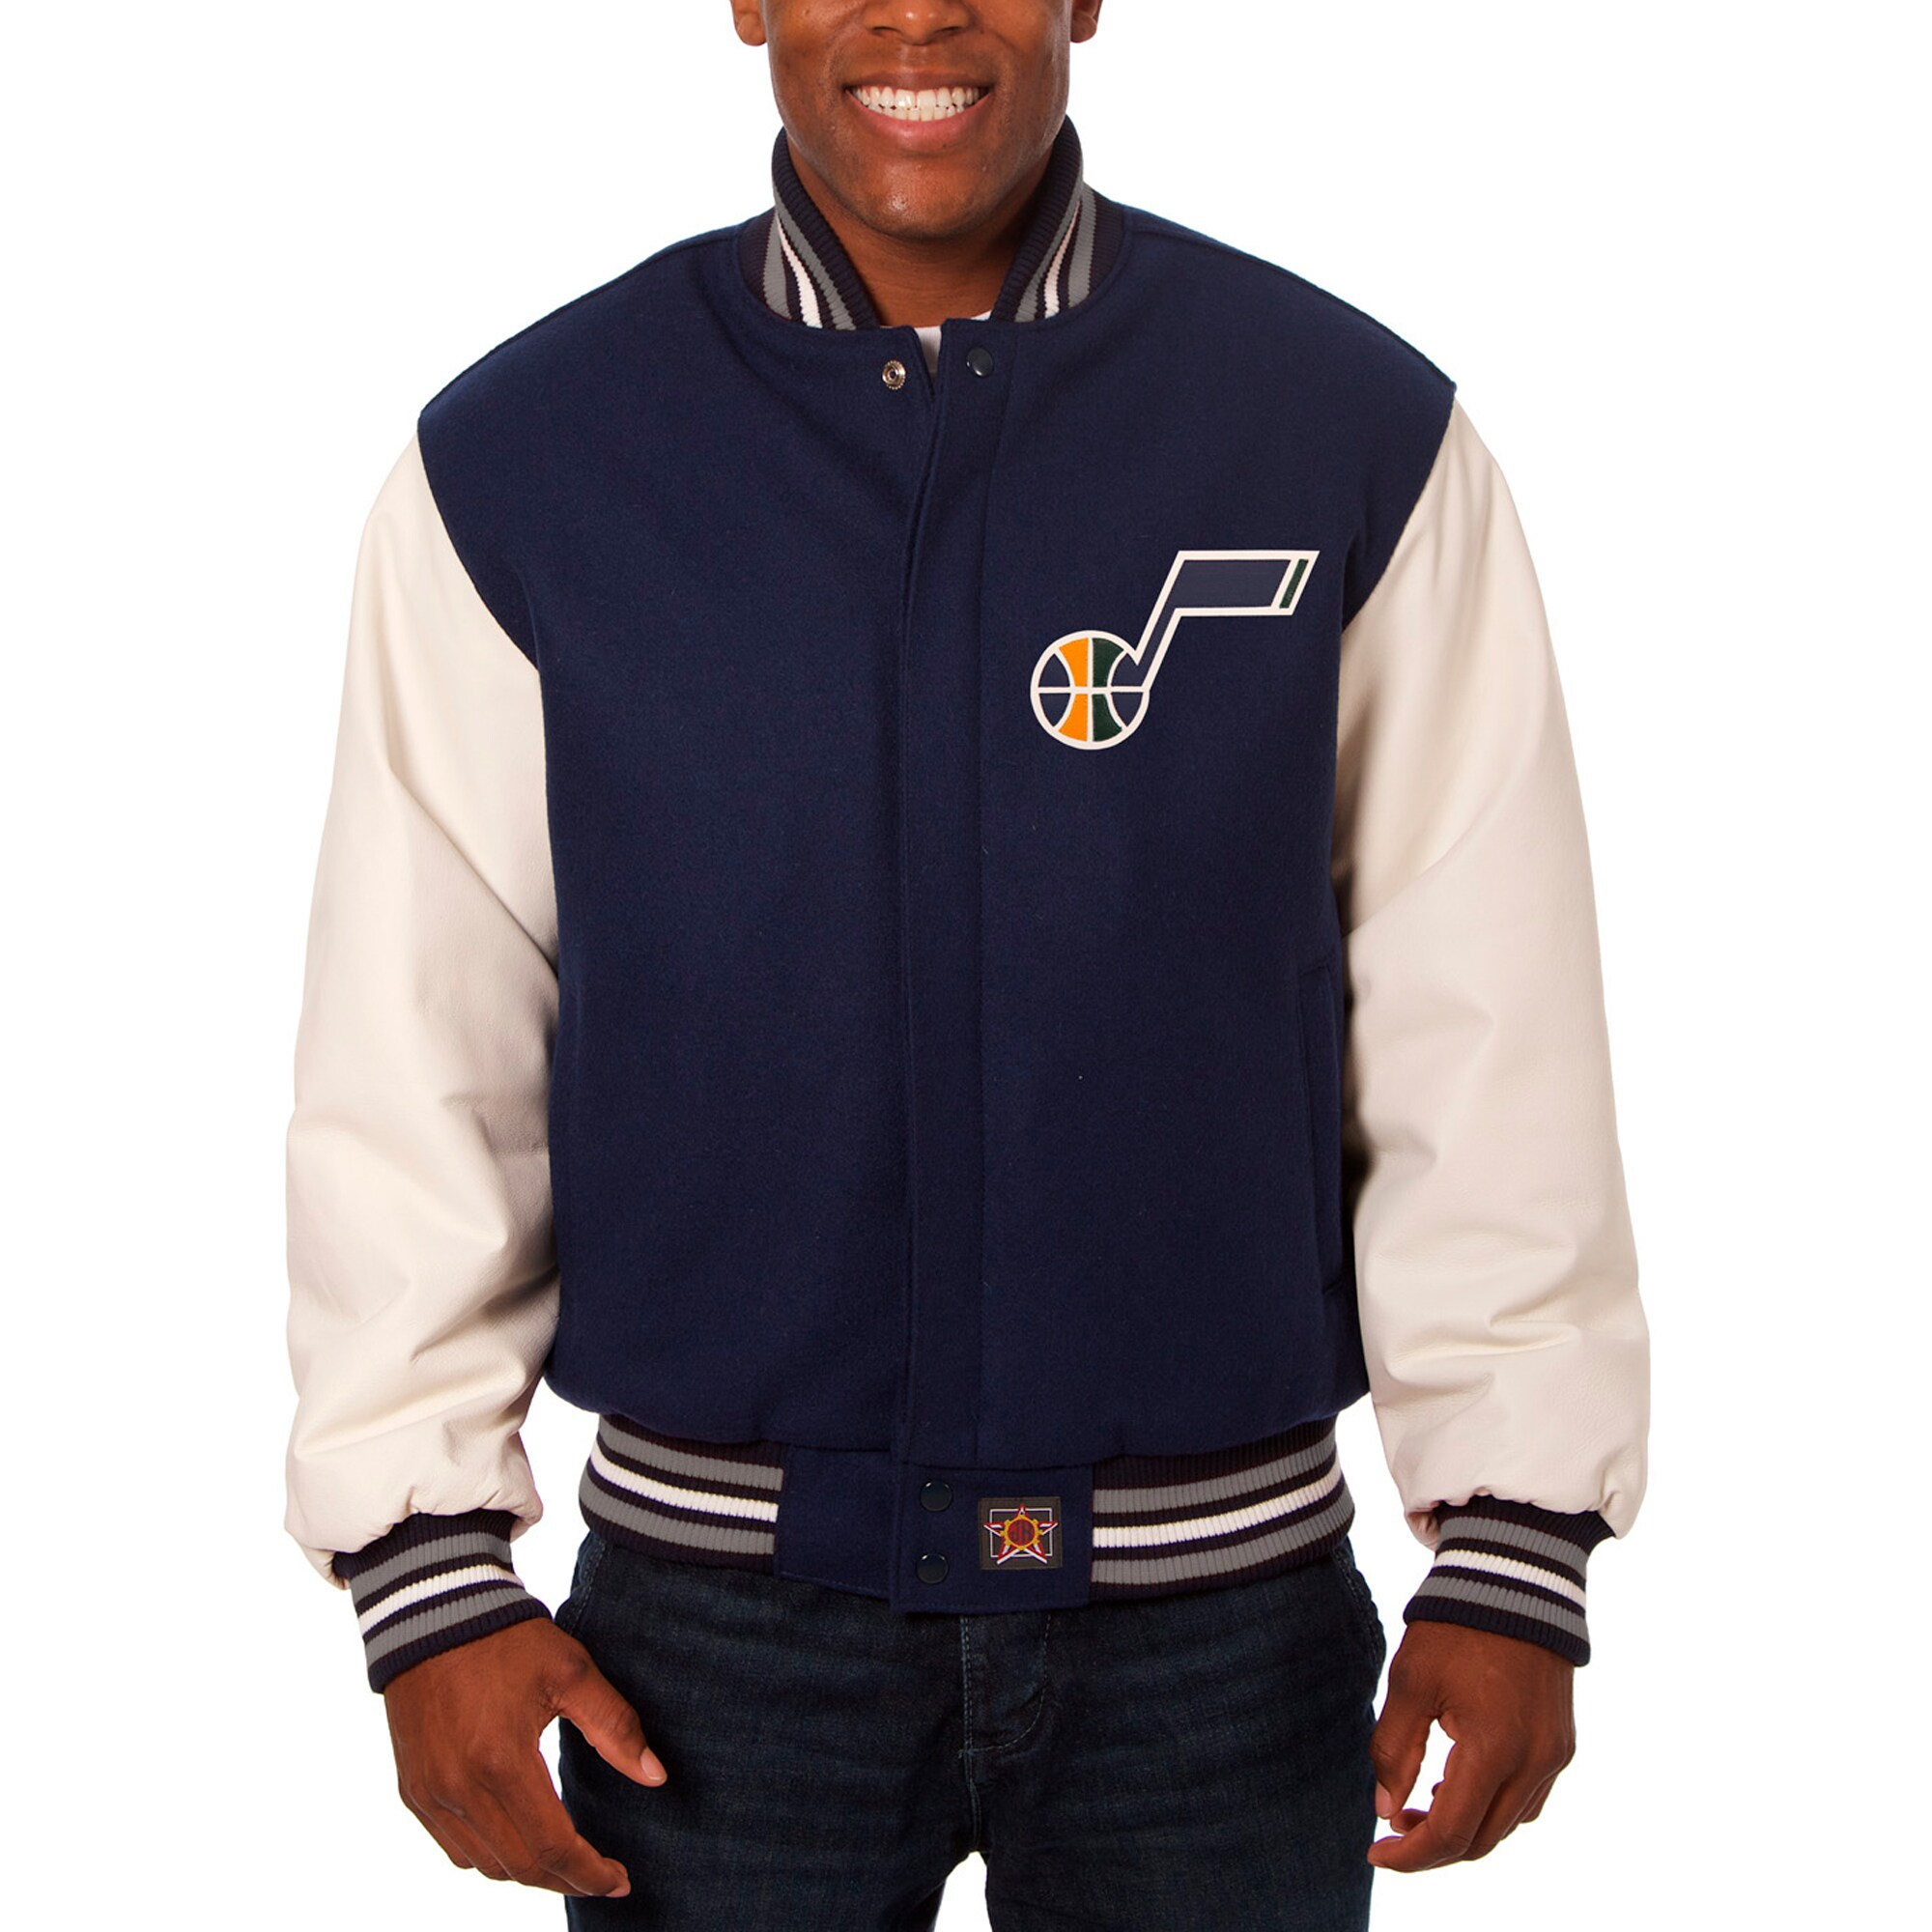 Utah Jazz JH Design Big & Tall Wool & Leather Full-Snap Jacket - Navy/White